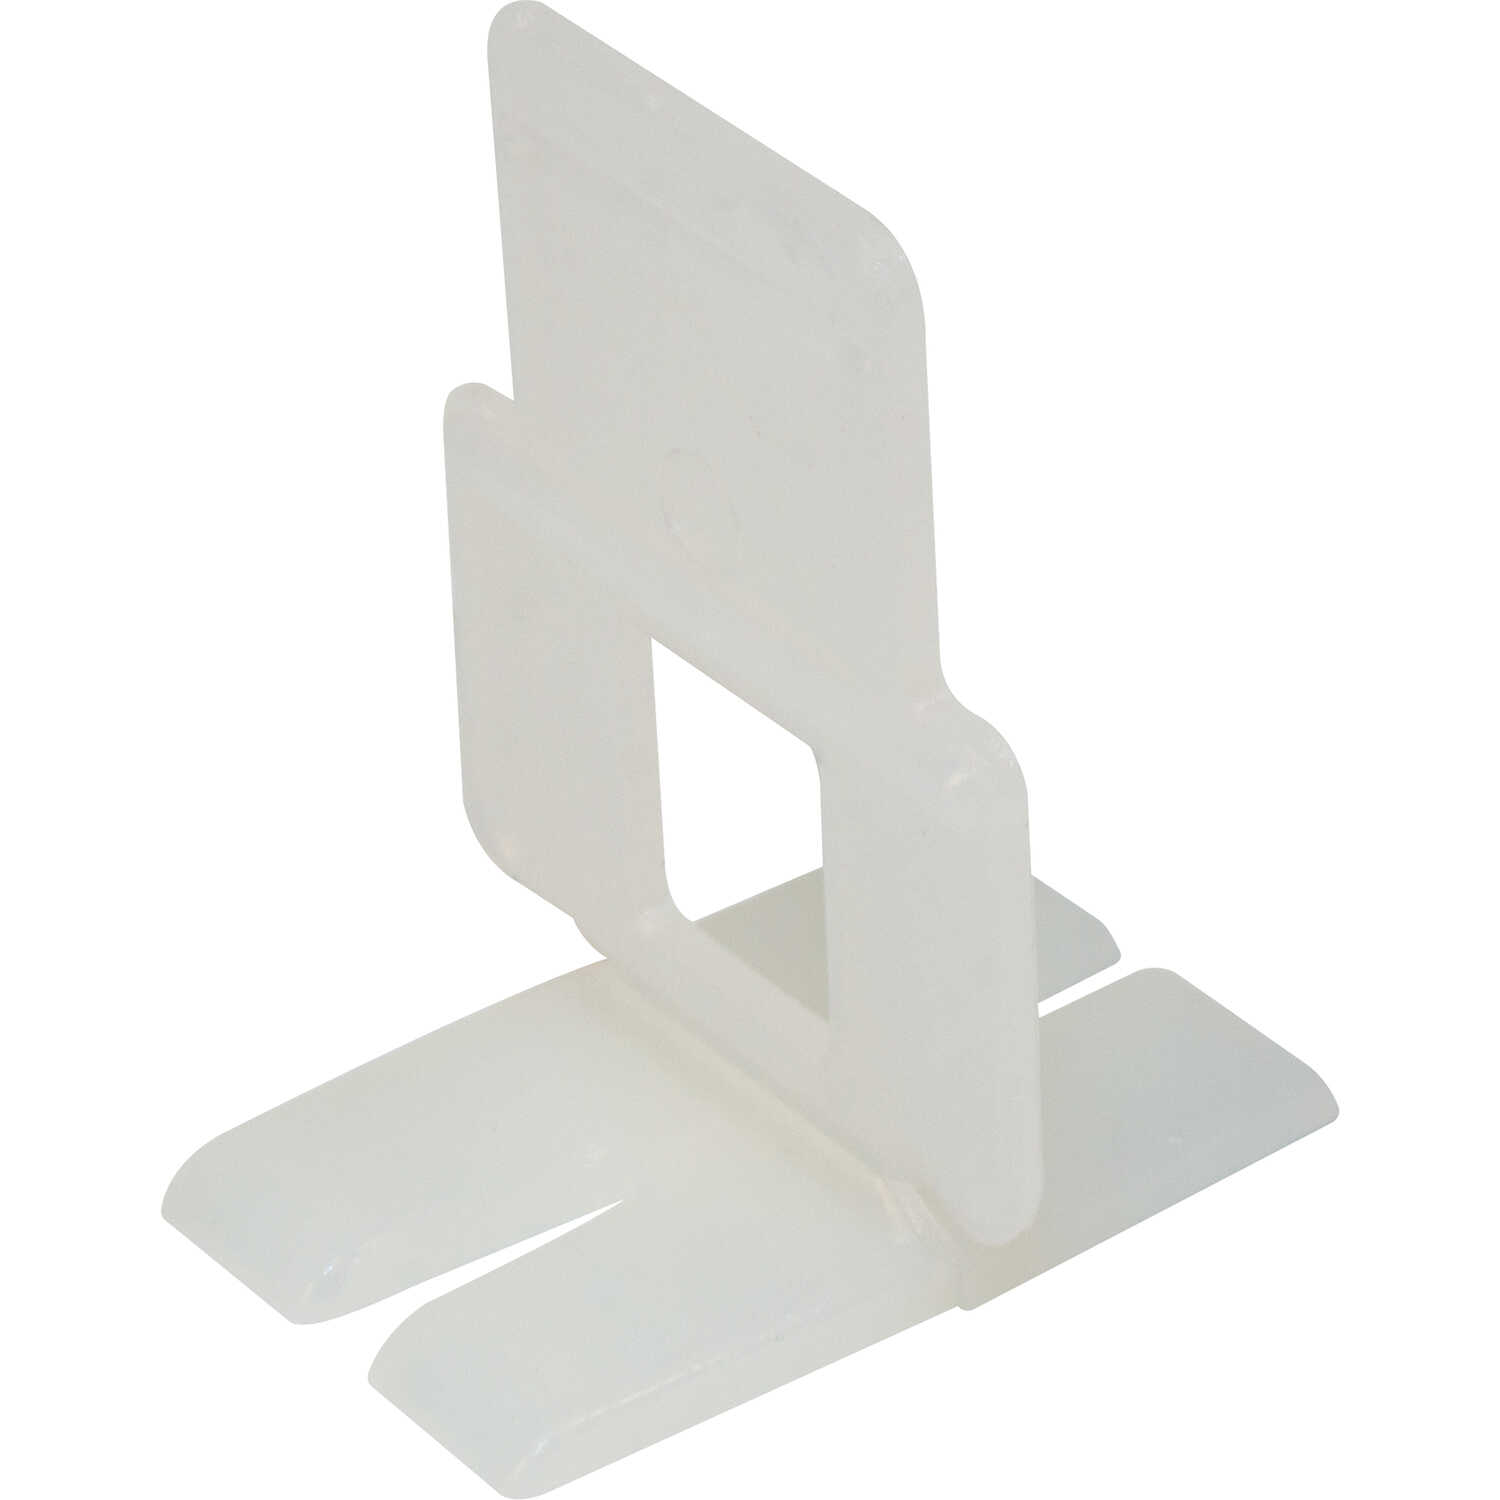 QEP  1 in. H x 1/16 in. W Plastic  Tile Spacer Clips  300 pk